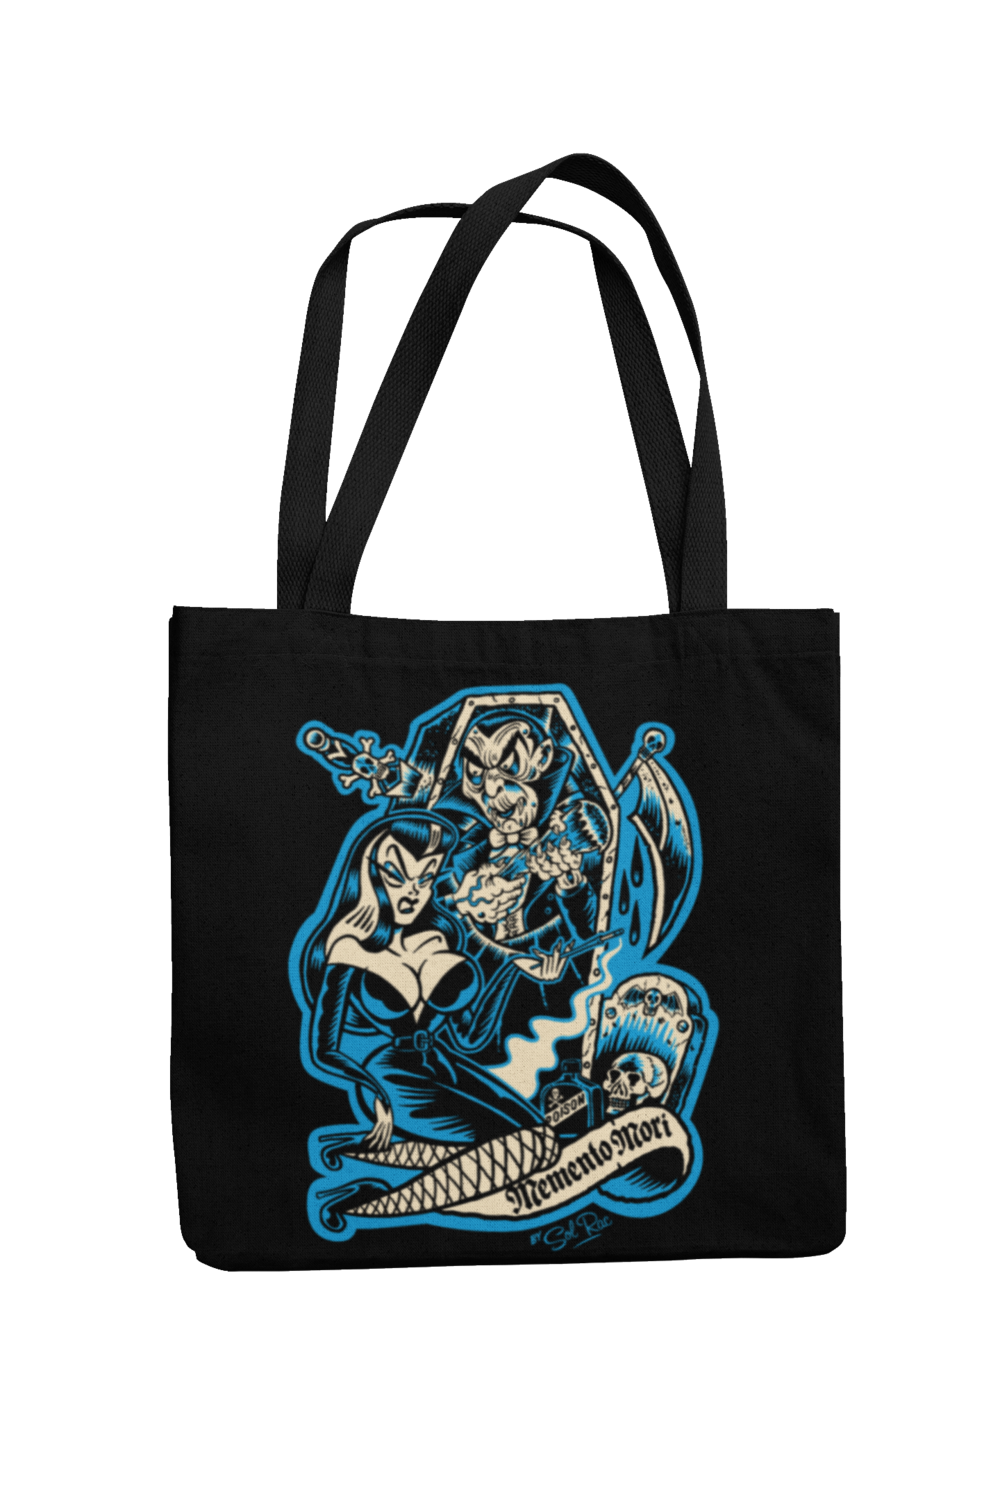 MEMENTO MORI Cotton Bag  logo design SOL RAC